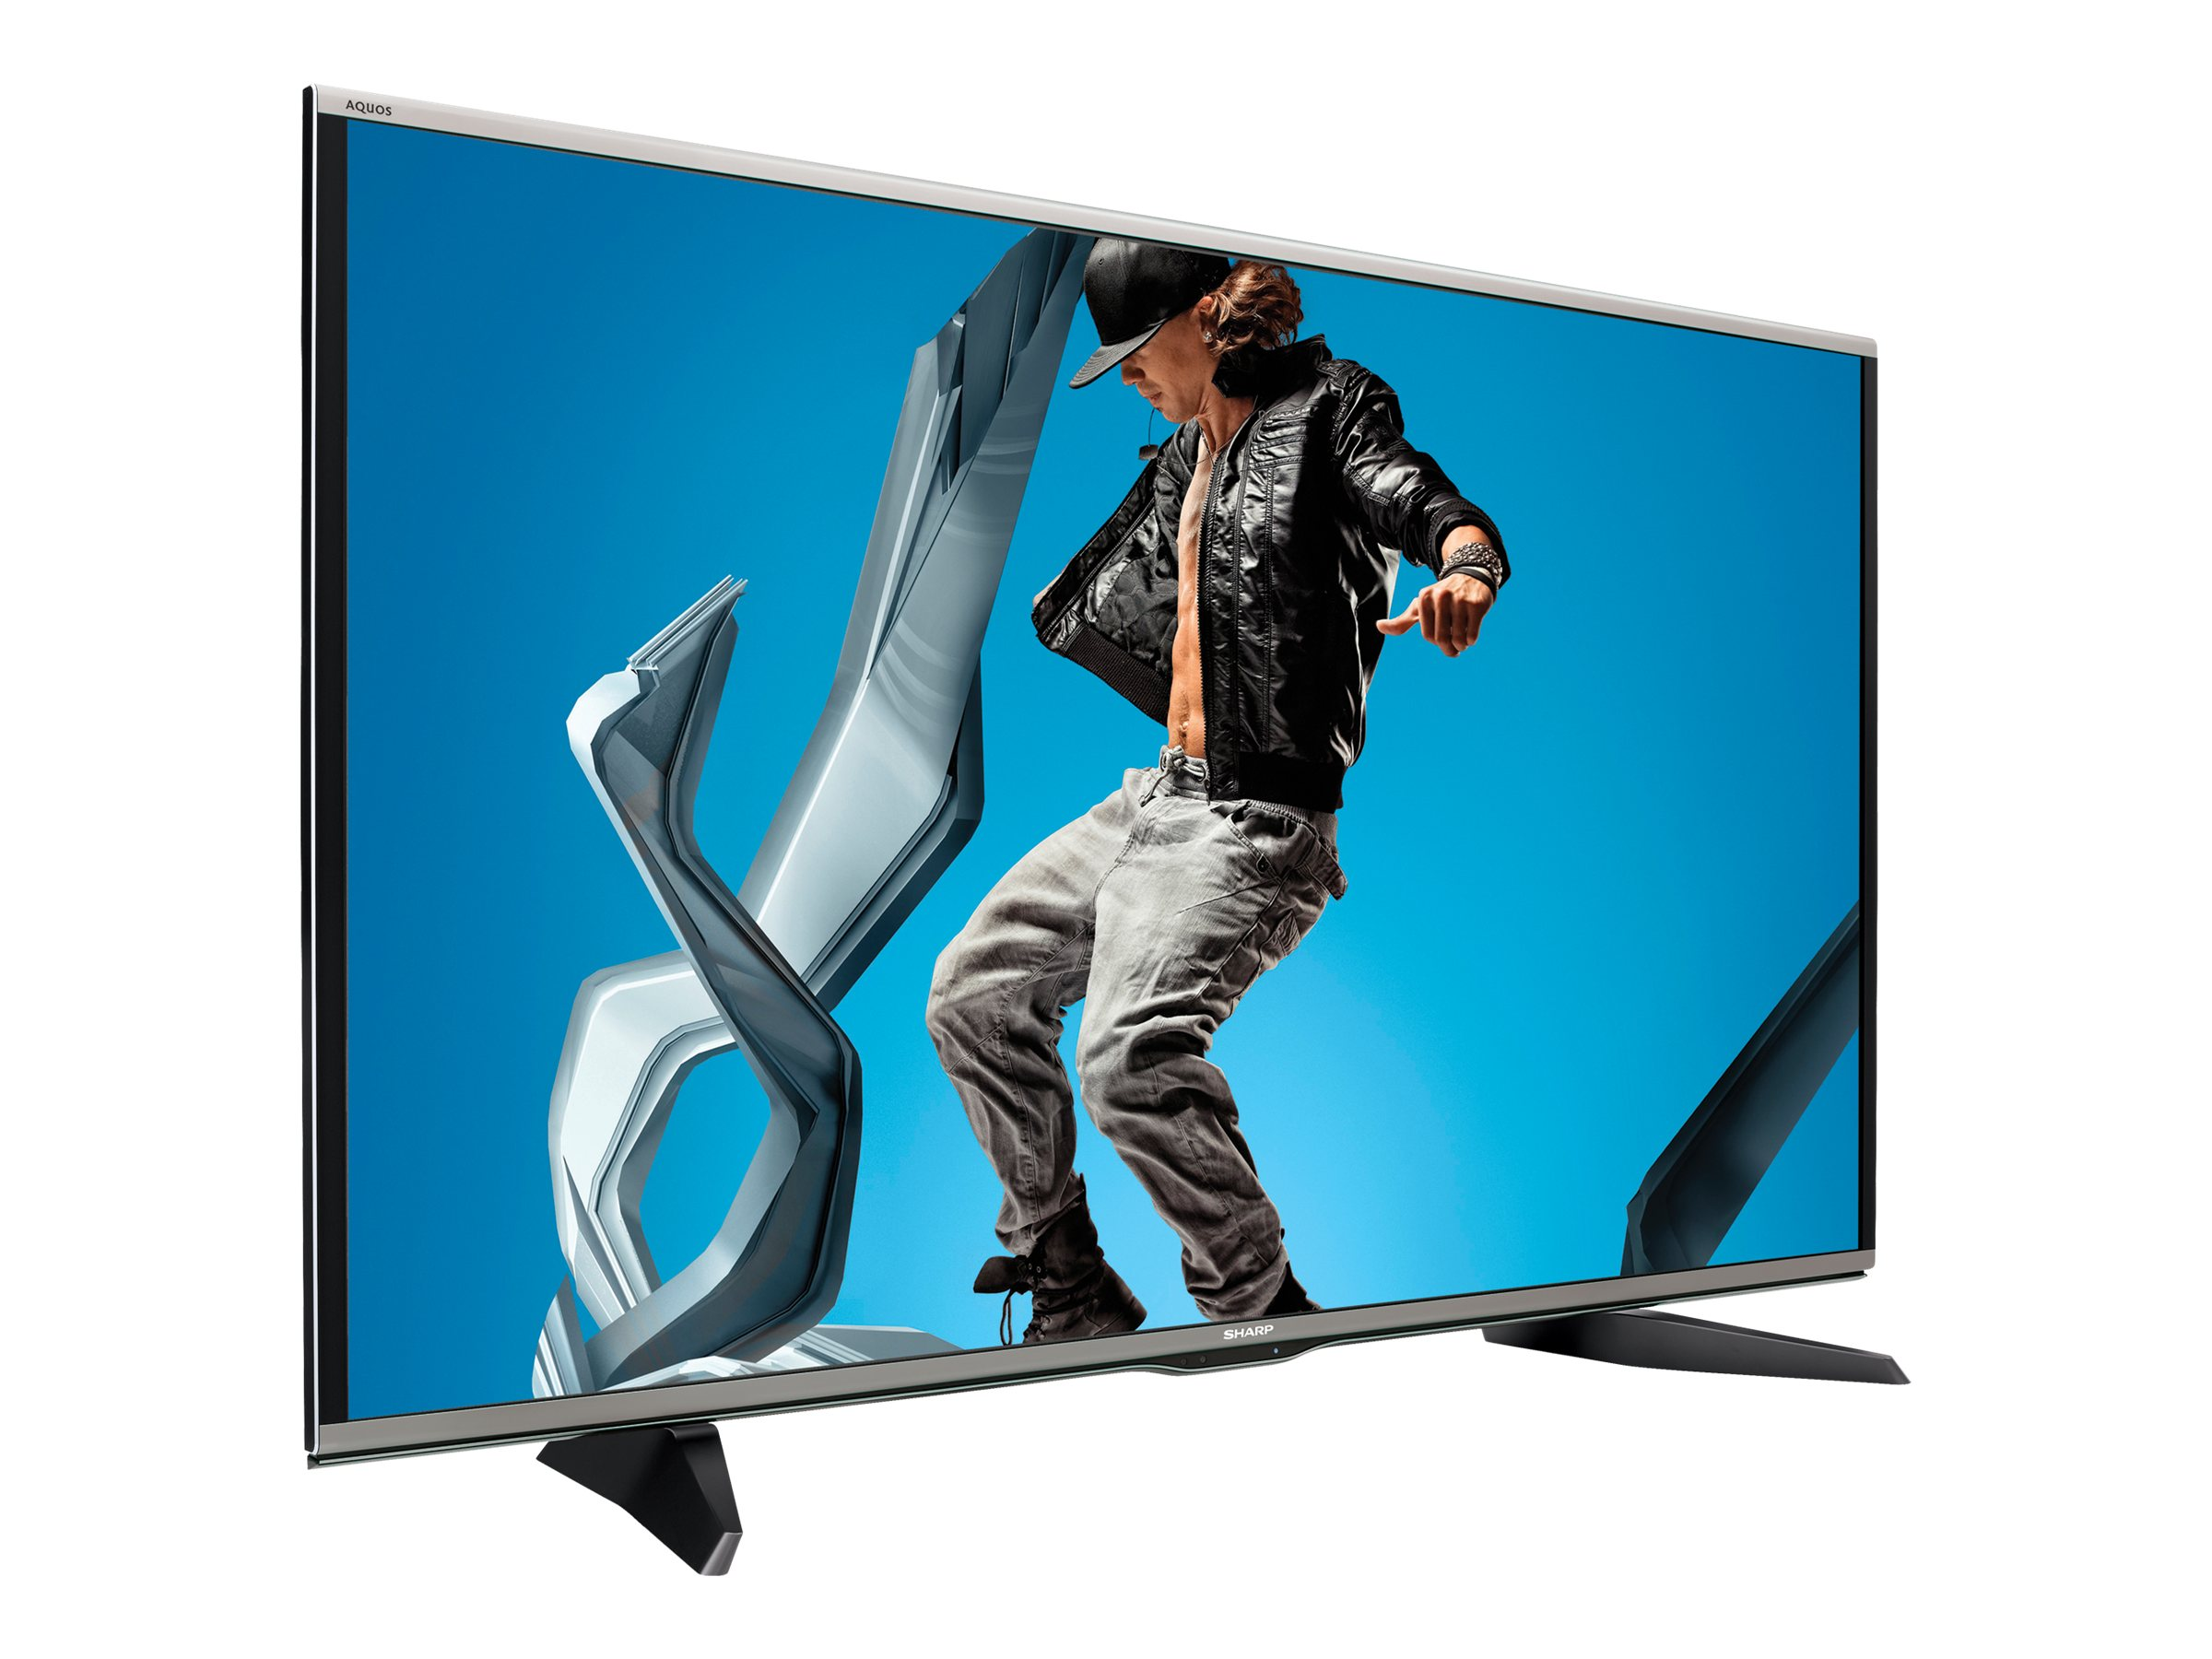 Sharp 60 LC60UQ17U Full HD LED-LCD 3D TV, Black, LC60UQ17U, 17530999, Televisions - LED-LCD Consumer